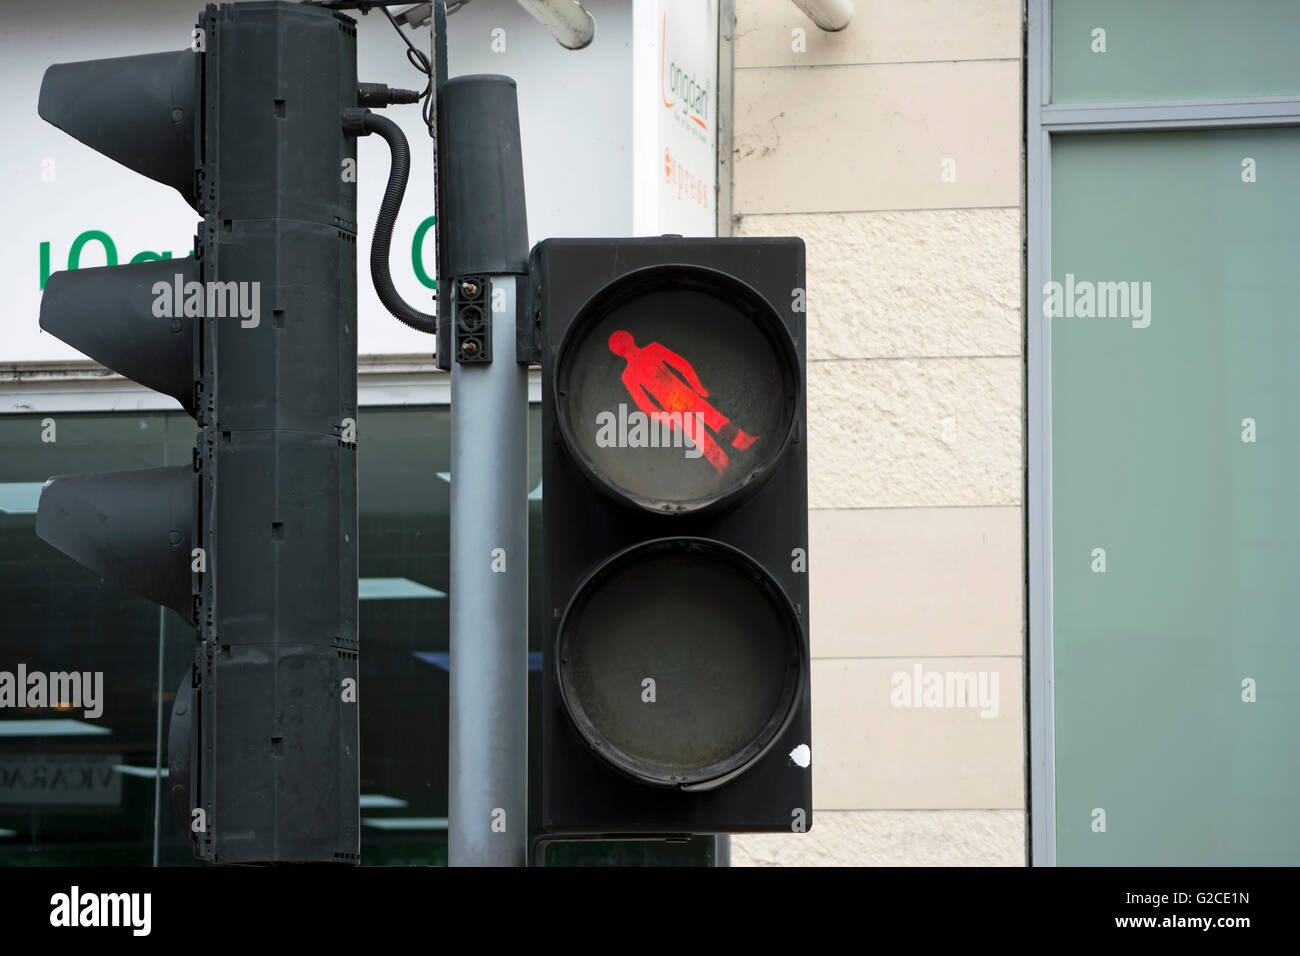 british pelican crossing with pictogram of red man at unusual angle, kingston upon thames, surrey, england - Stock Image